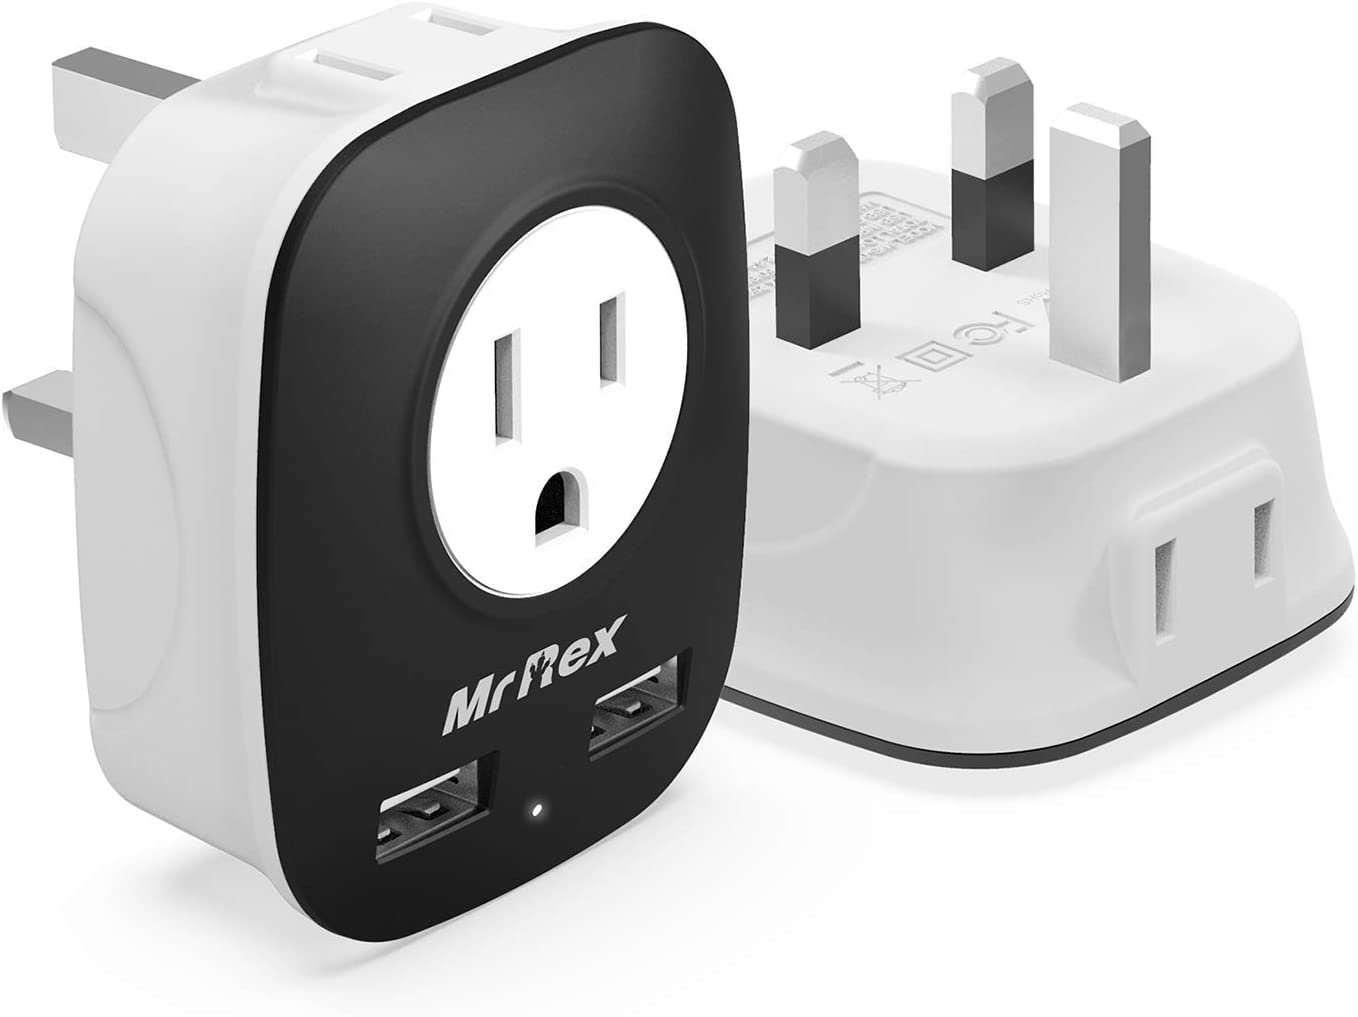 Mr Rex US to UK Travel Adapter [2-Pack], Type G Plug Power Adapter 2&3-Prong Outlet and 2 USB Ports for US to London England Scotland Ireland, Singapore, Macau, Malaysia; for Phone, Laptop, Camera